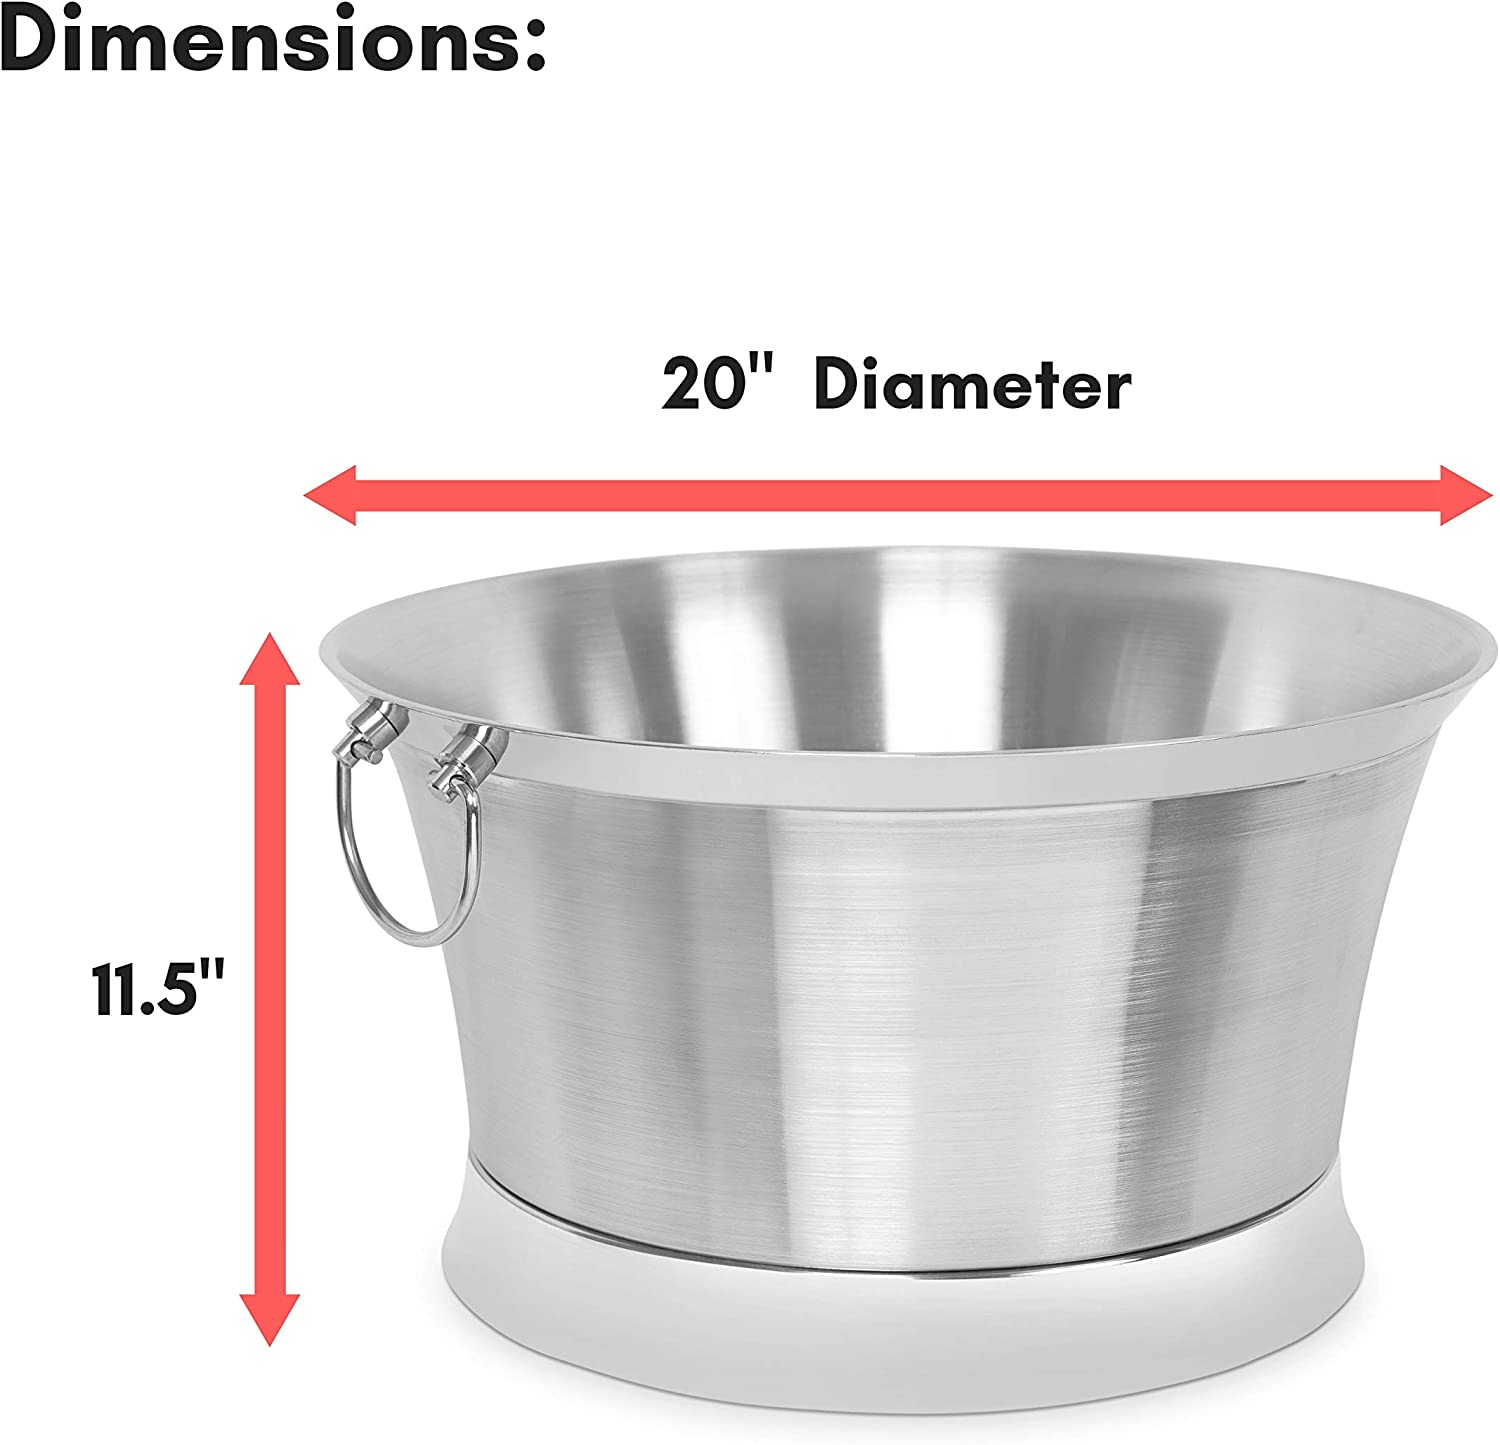 Small Metal Drink Cooler Handles Small Container Ice Bucket House Party Stainless Steel BirdRock Home Double Wall Round Beverage Tub